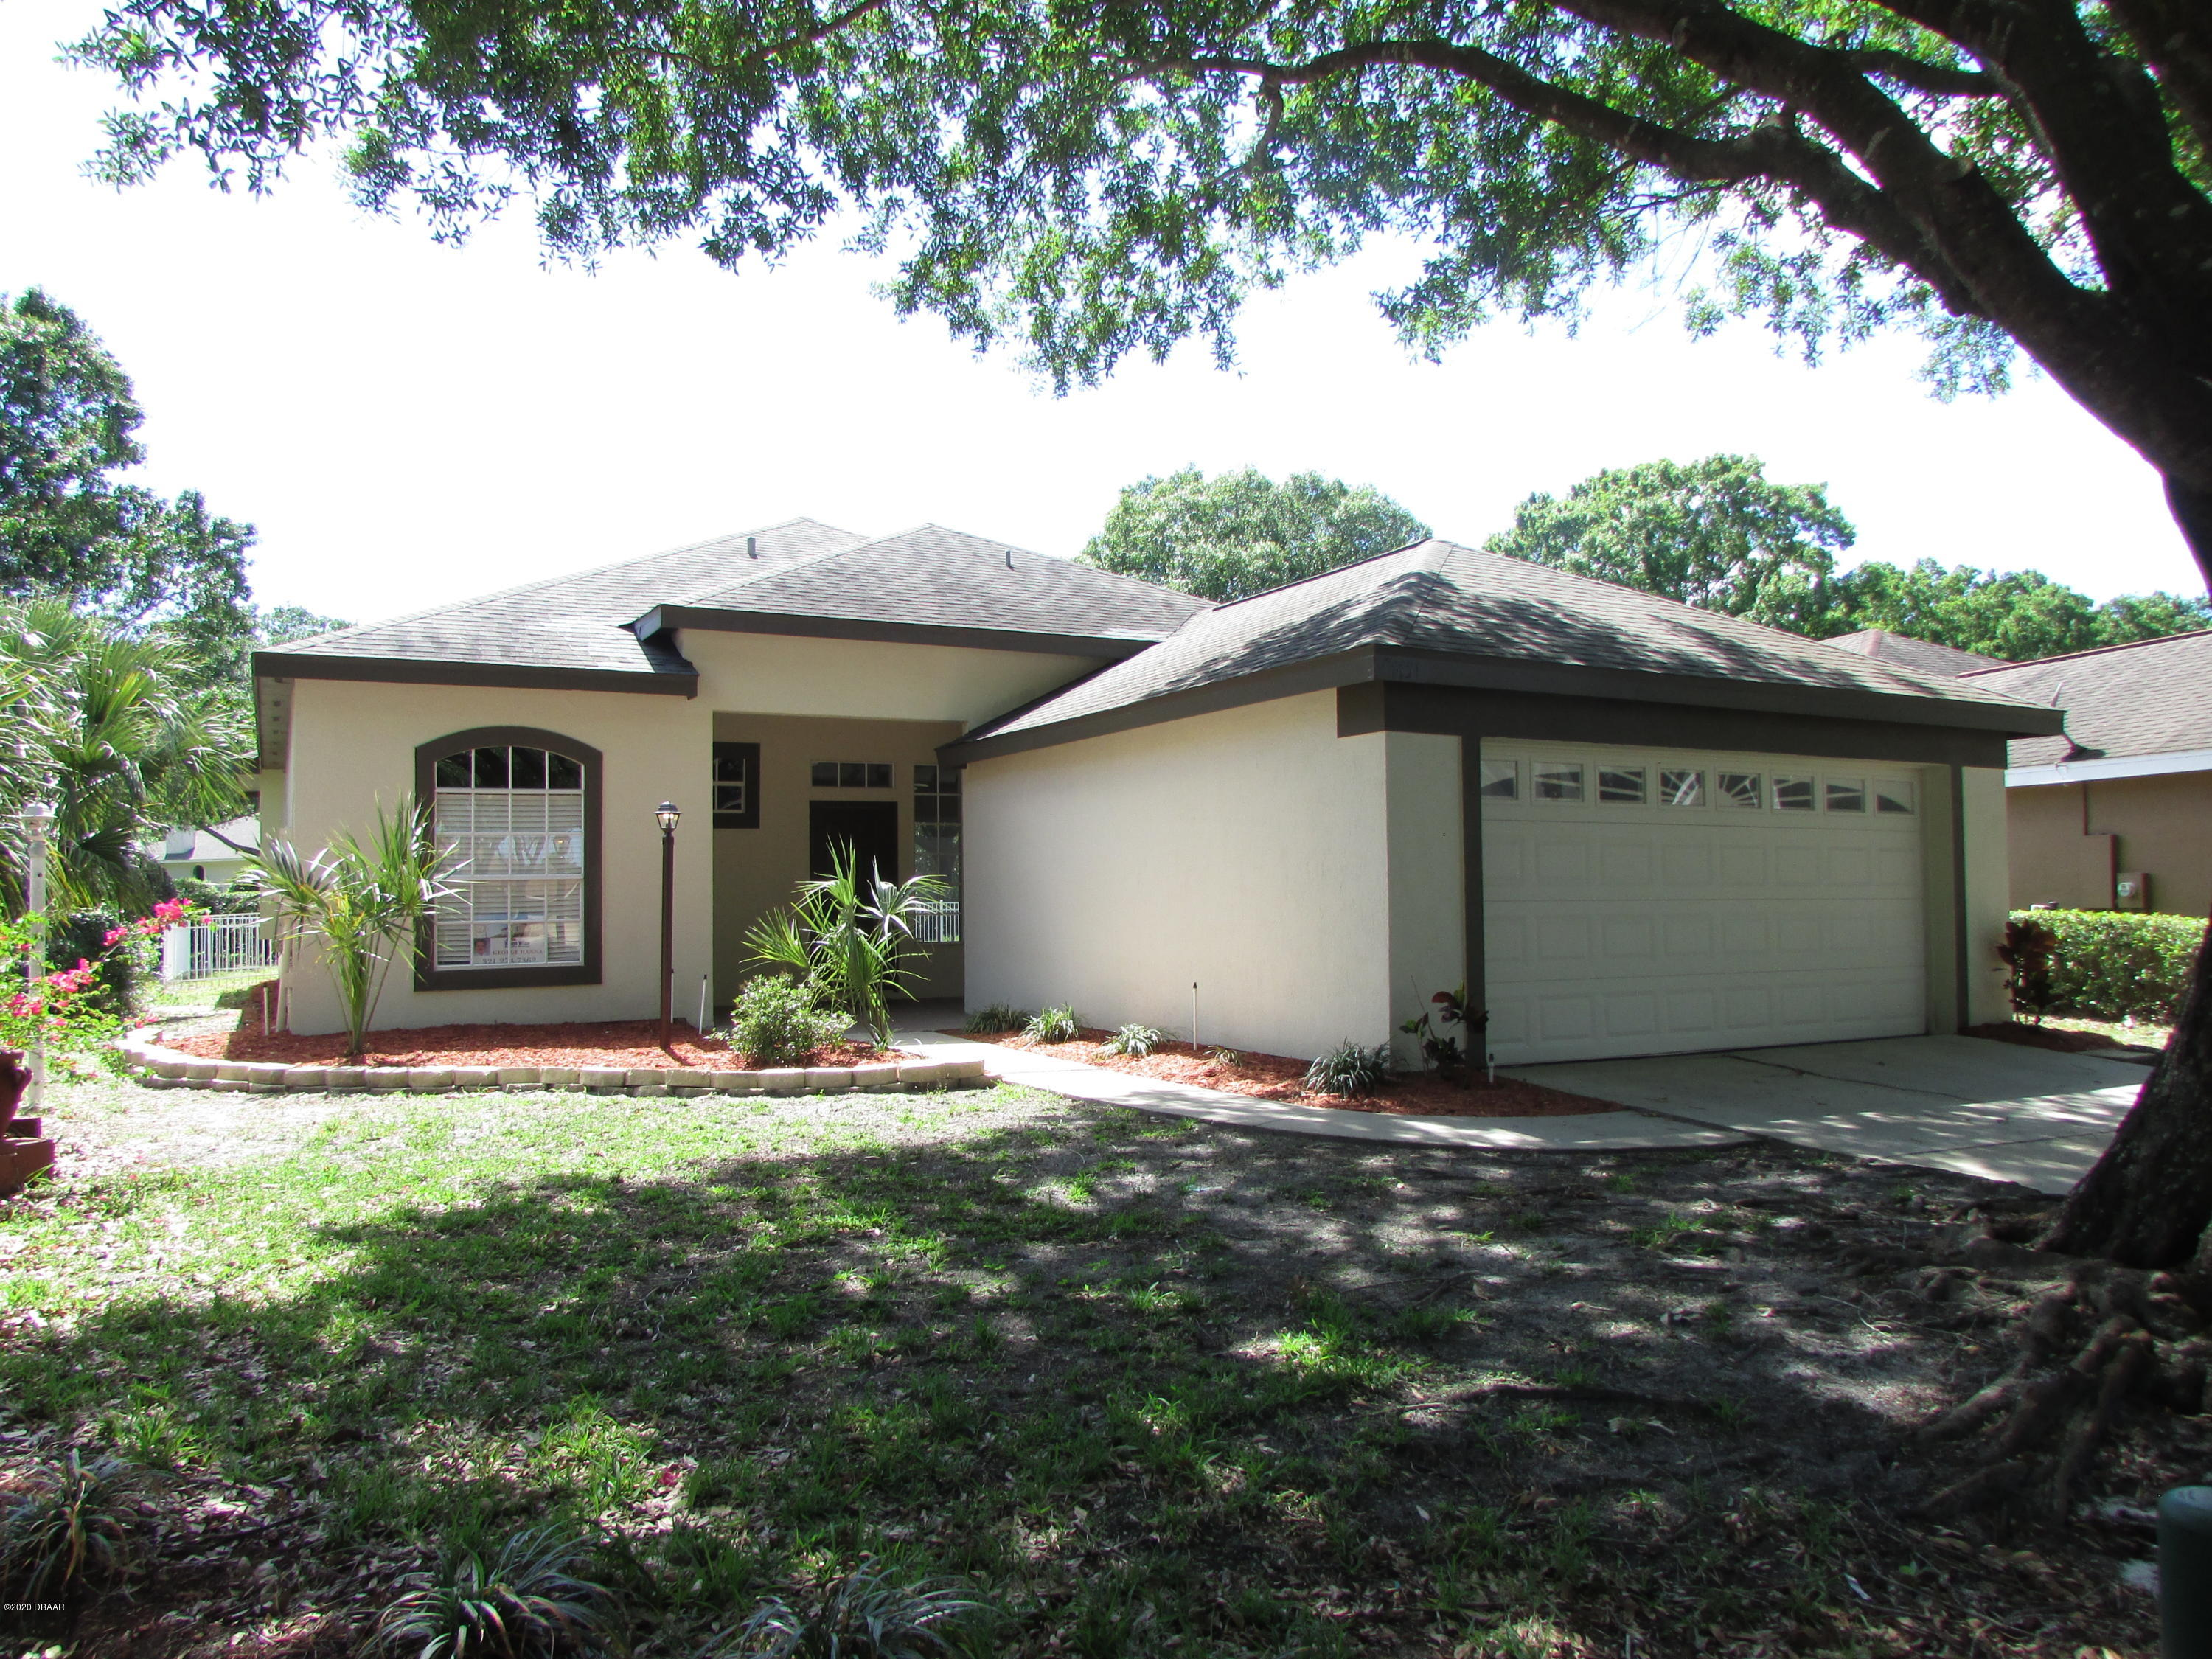 1451 Finsbury Court, Lake Mary in Seminole County, FL 32746 Home for Sale